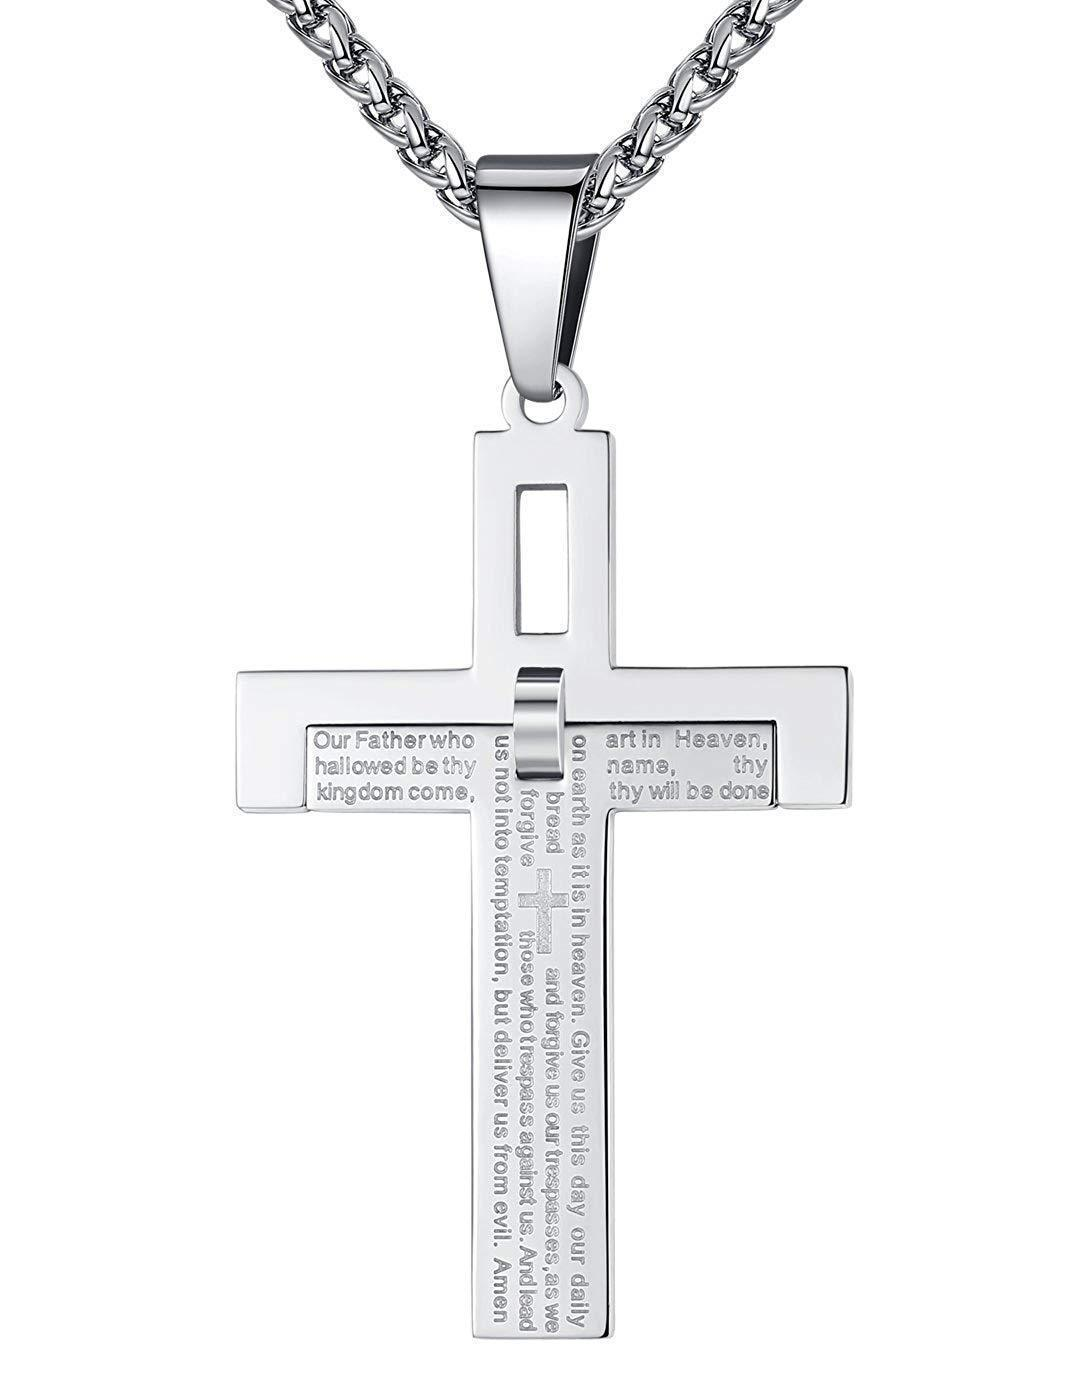 "Aoiy Men's Stainless Steel Lord's Prayer Cross Pendant Necklace, 24"" Wheat Link Chain, ggp123yi"